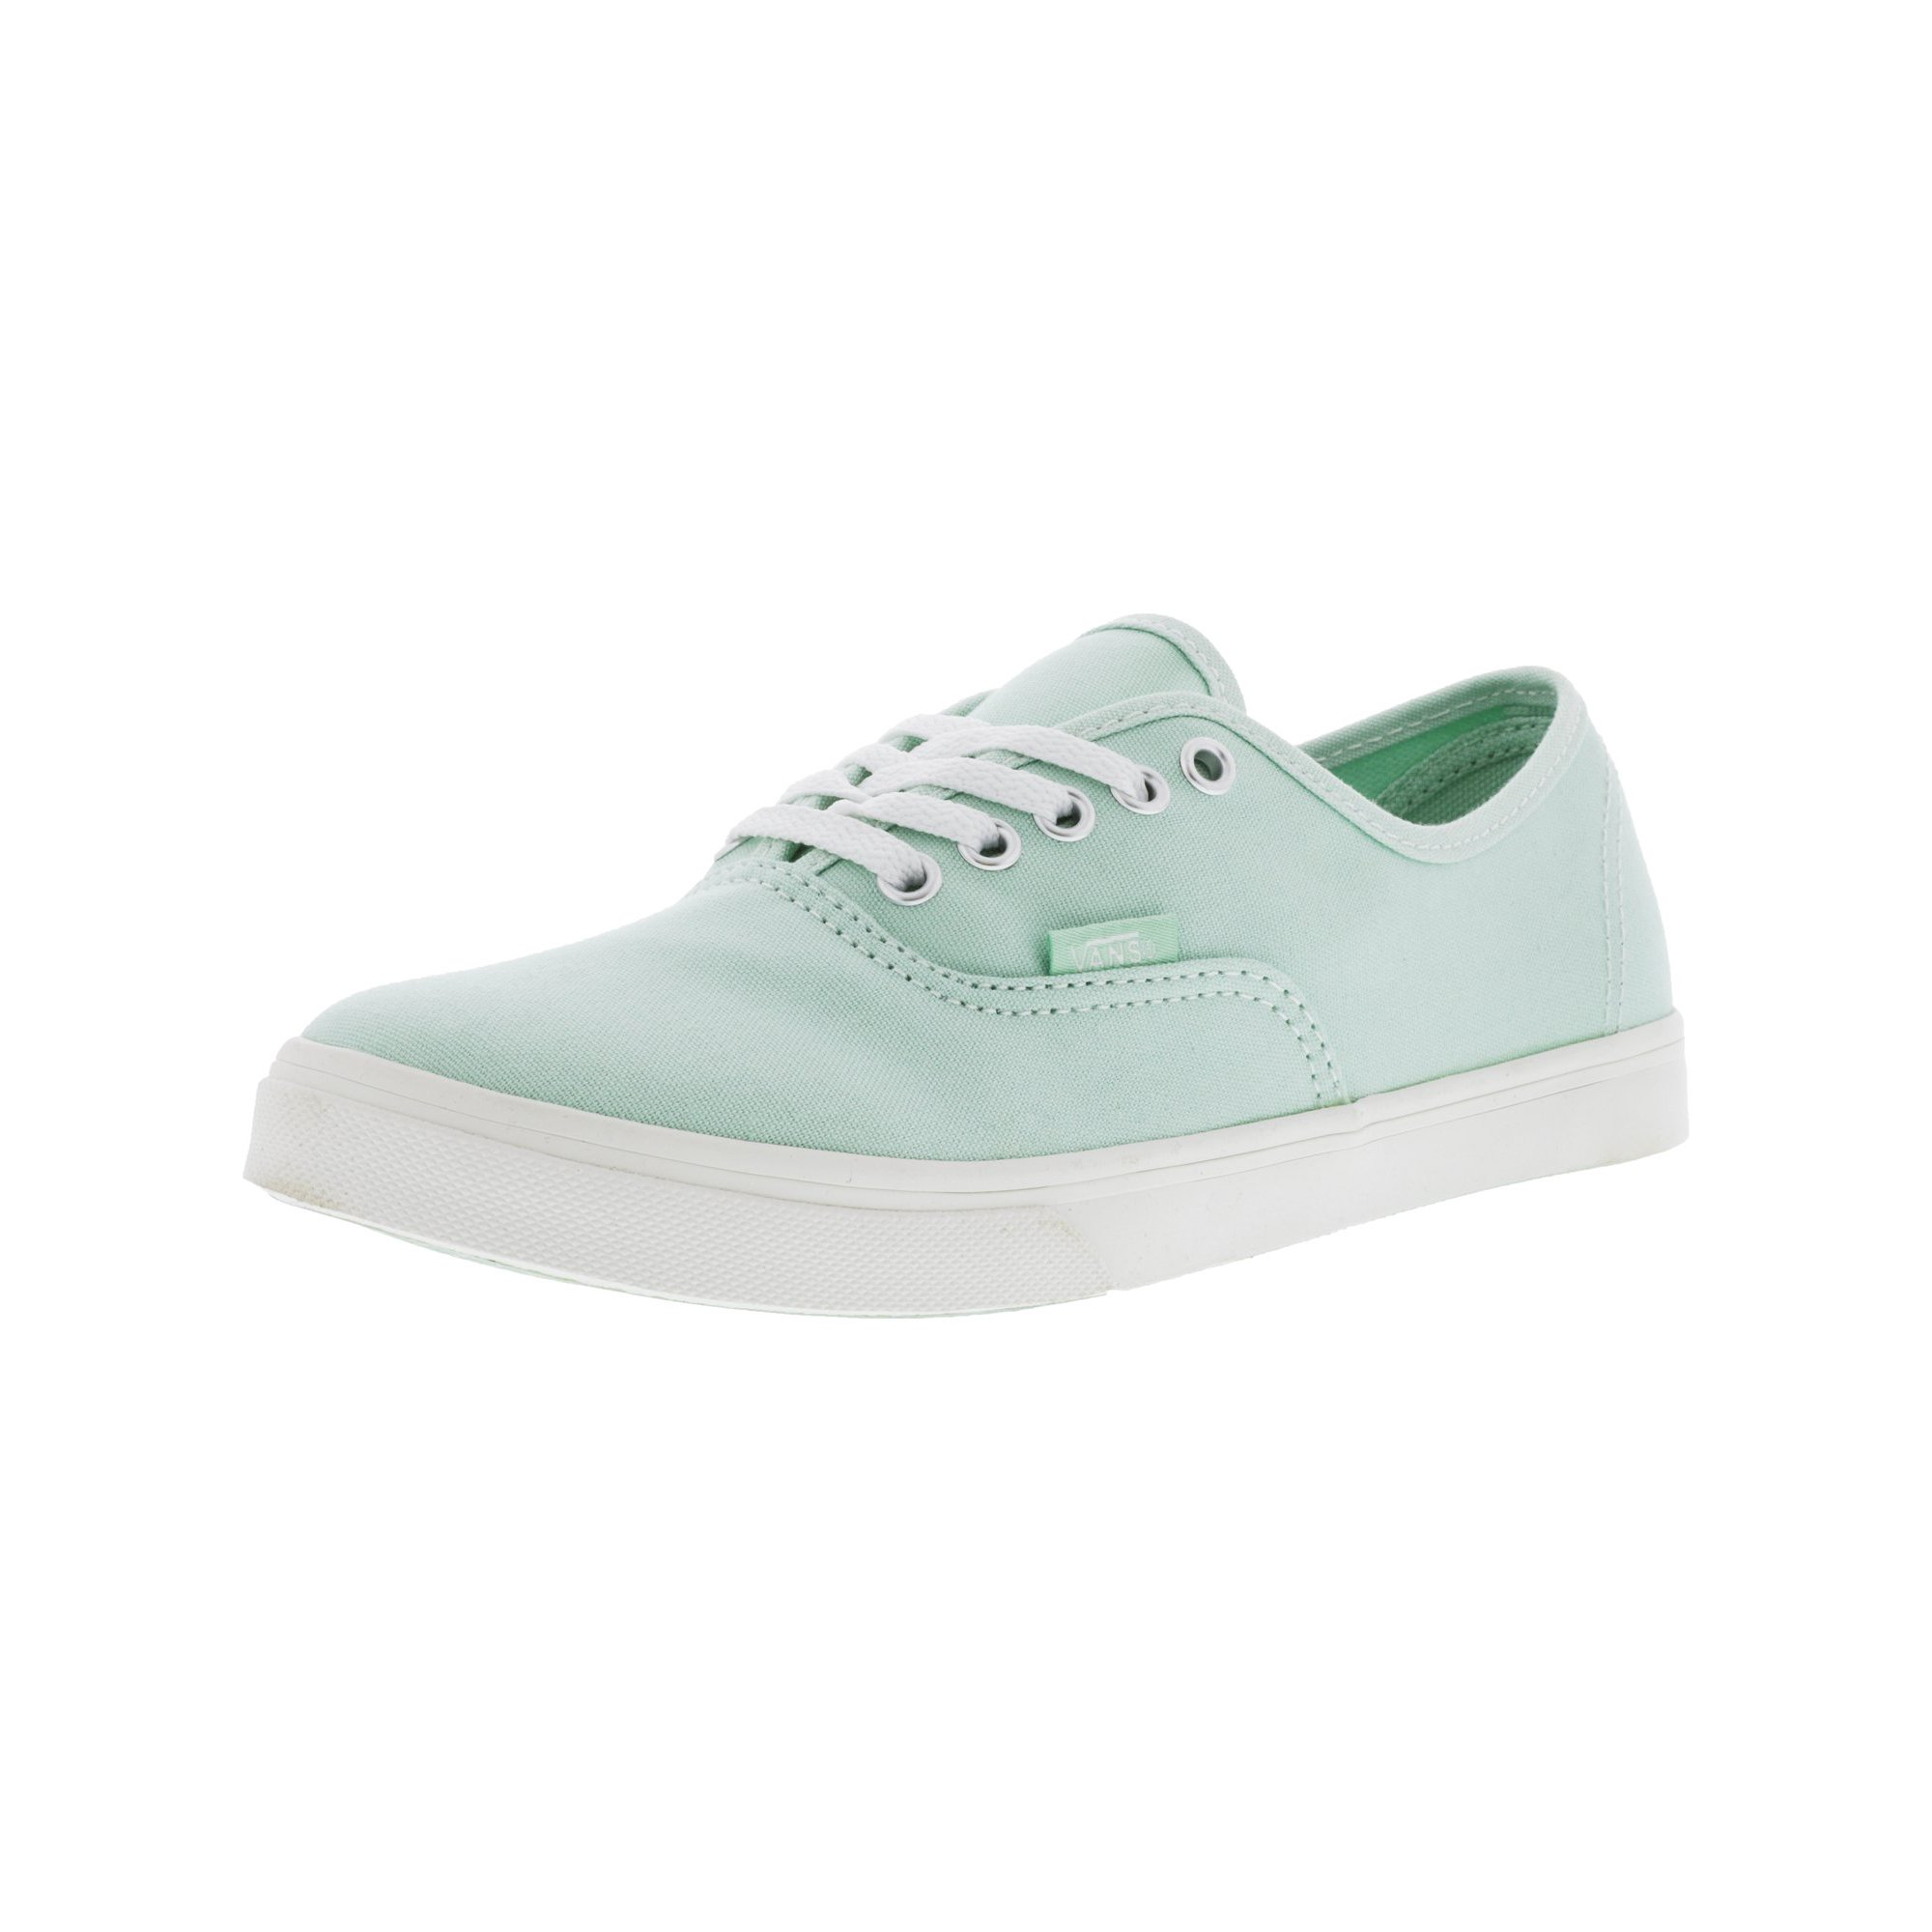 faf47c97e2 Vans Authentic Lo Pro Gossamer Green   Blanc De Ankle-High Cotton  Skateboarding Shoe - 9M 7.5M